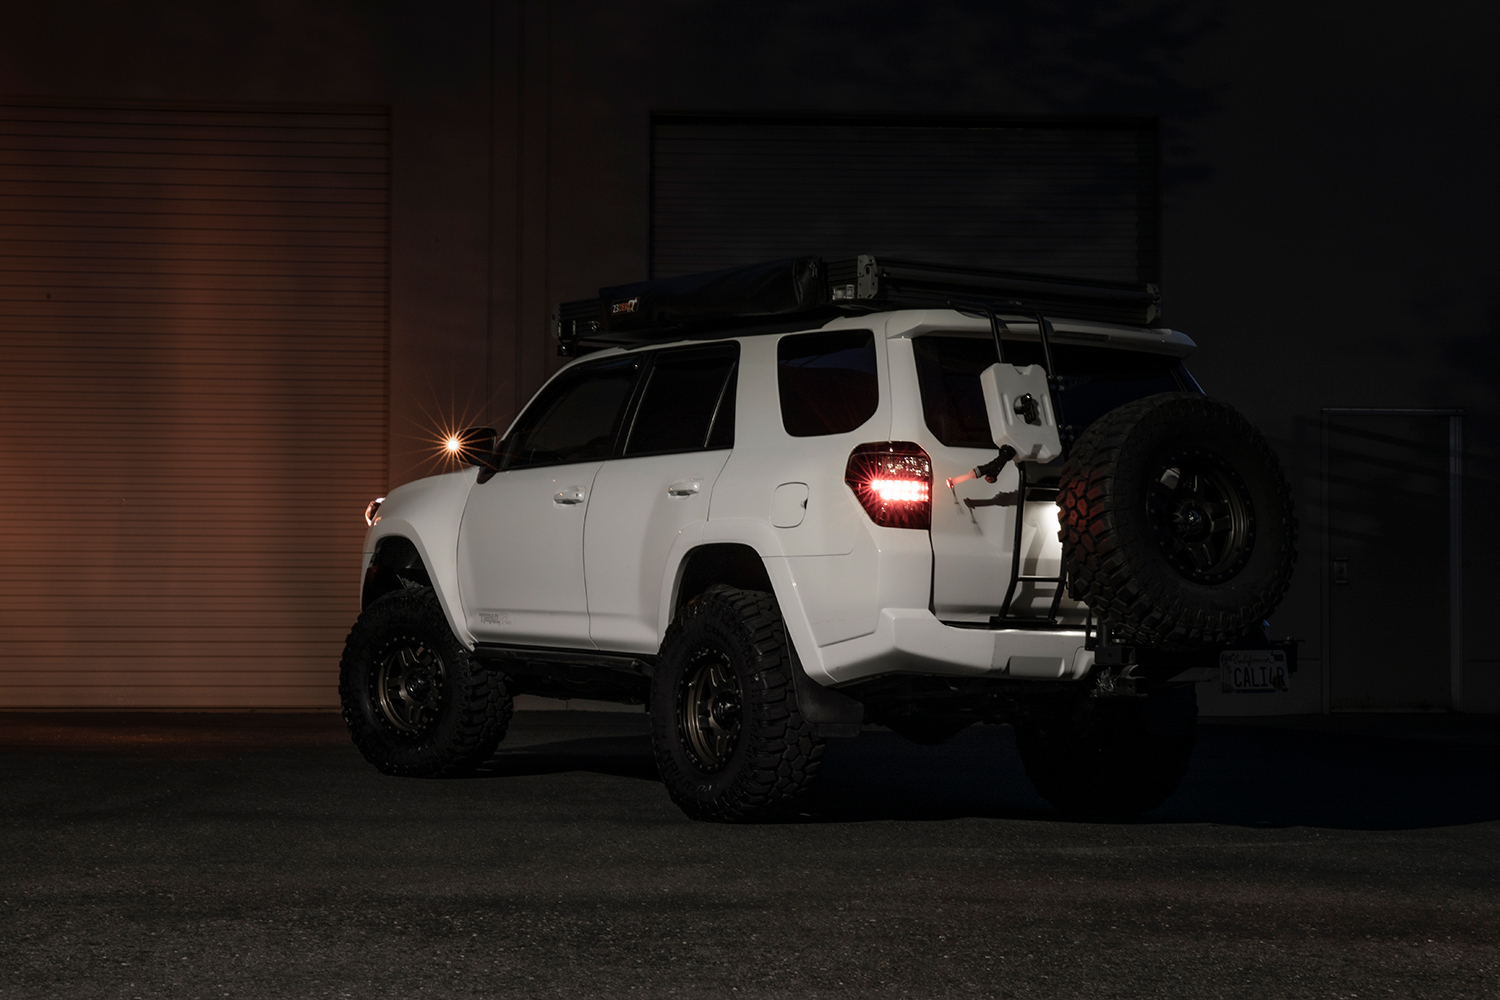 USR DEPO Blackedout Tail Lights for the 5th Gen 4Runner